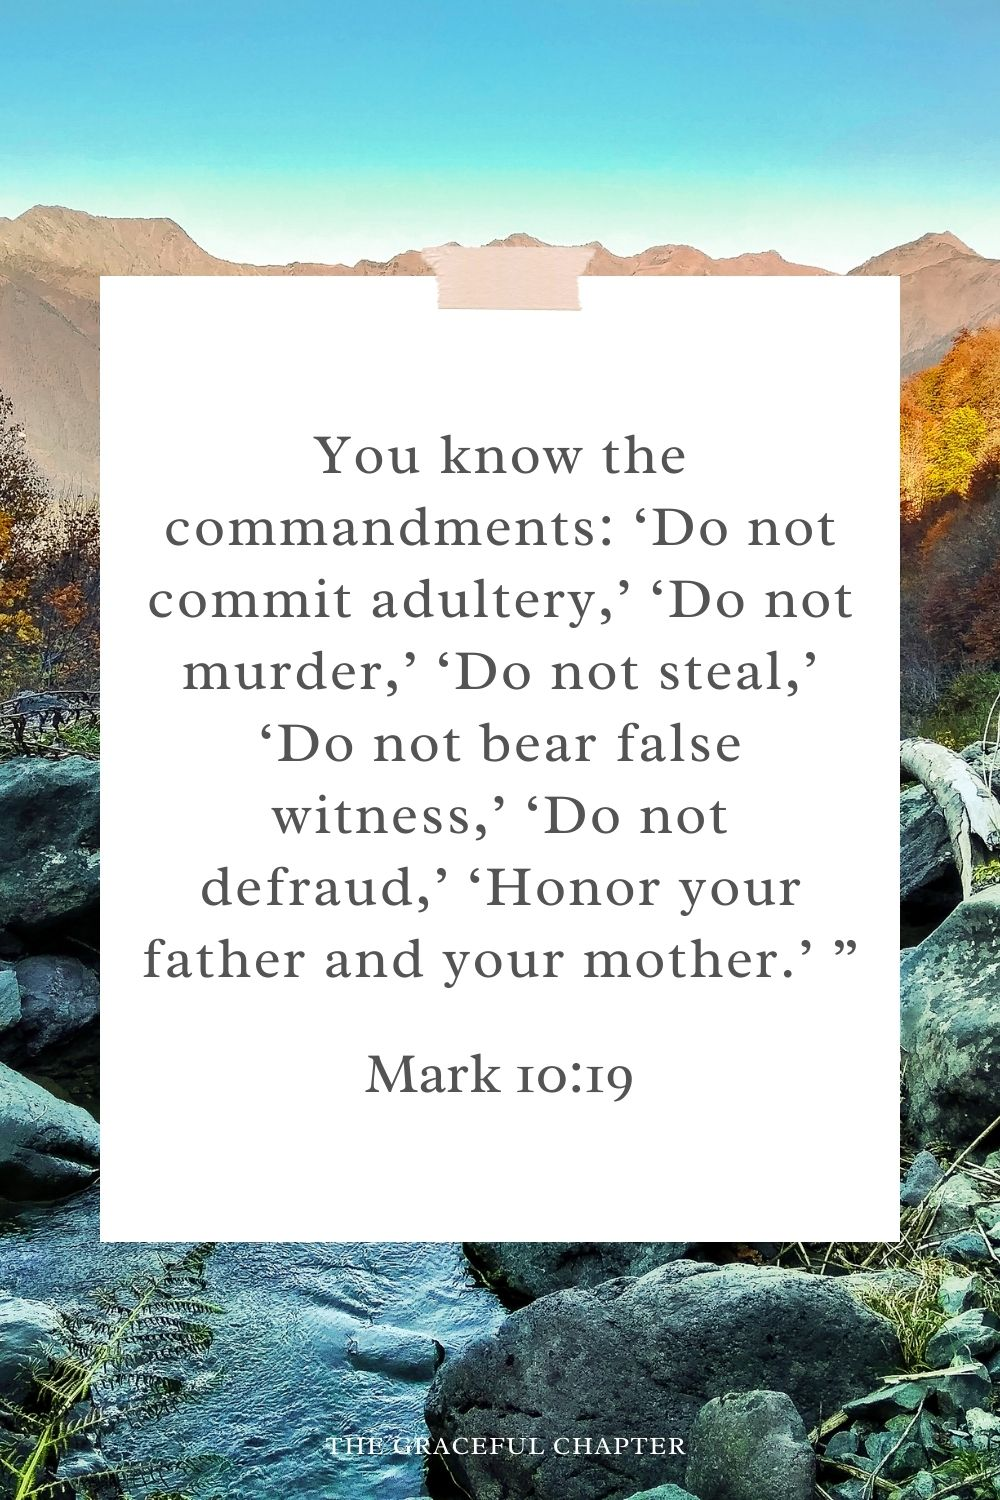 """You know the commandments: 'Do not commit adultery,' 'Do not murder,' 'Do not steal,' 'Do not bear false witness,' 'Do not defraud,' 'Honor your father and your mother.' """" Mark 10:19"""